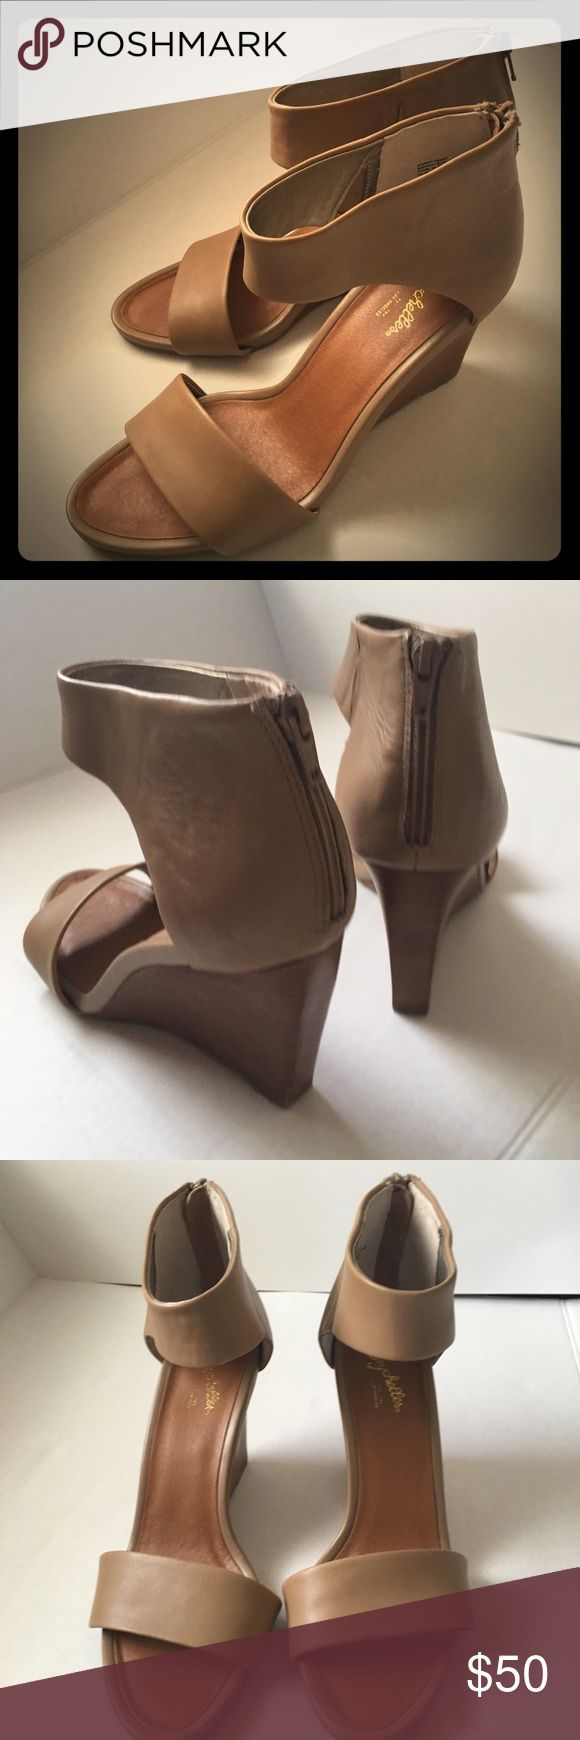 Seychelles Leather Wedges Excellent condition beautiful Cognac brown leather worn a few times Seychelles Shoes Wedges